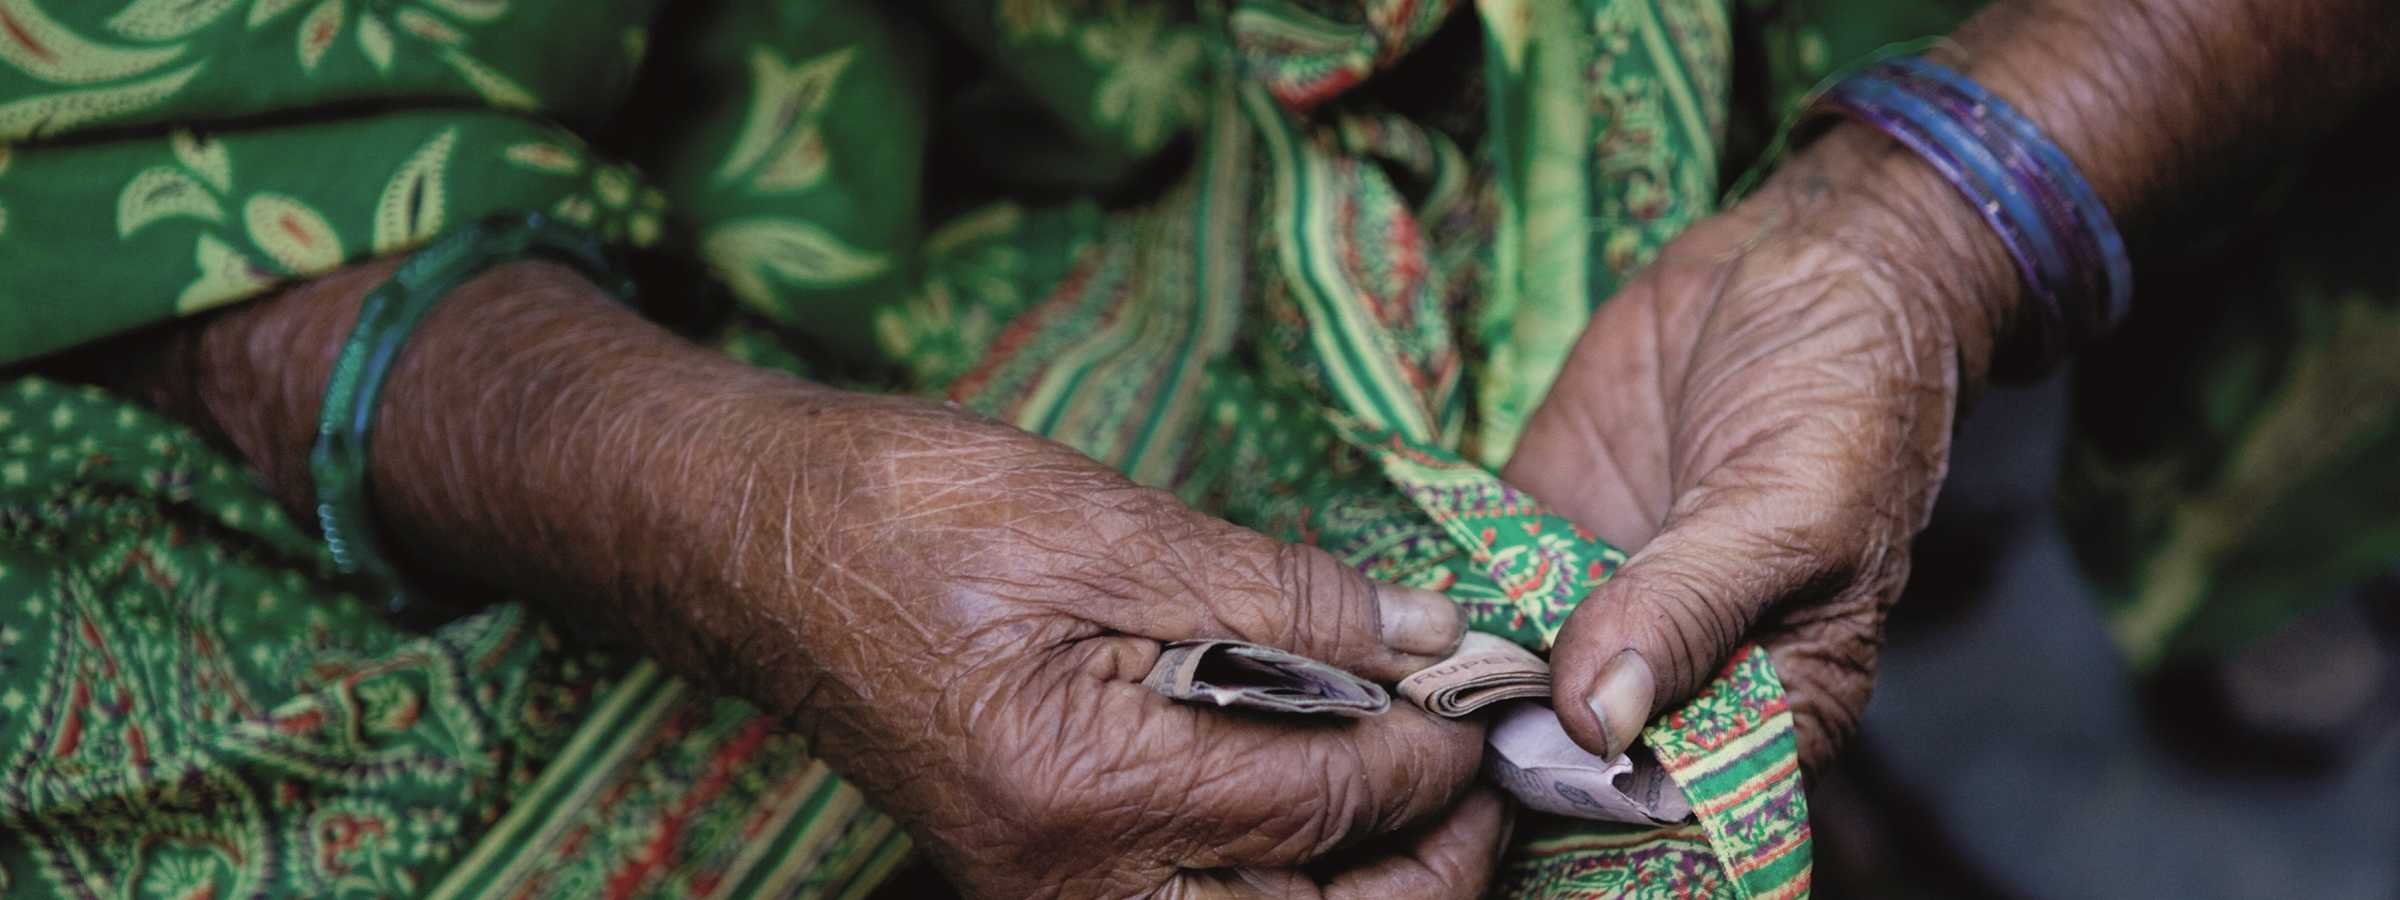 women entrepreneurship in case of bangladesh Small and medium enterprises development in bangladesh: problems and prospects  this is more so in the case of women entrepreneurship development.